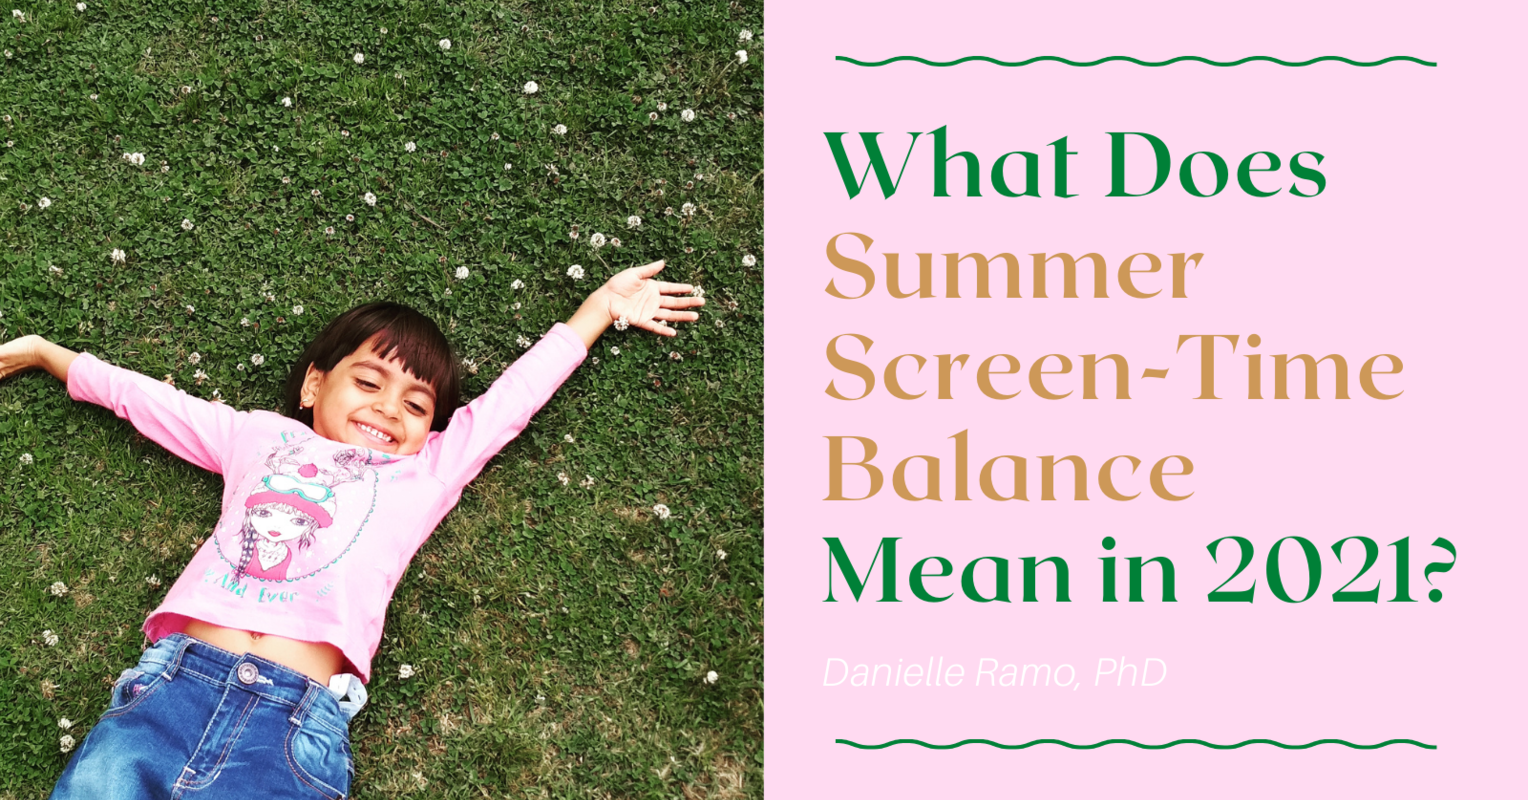 What Does Summer Screen-Time Balance Mean in 2021?